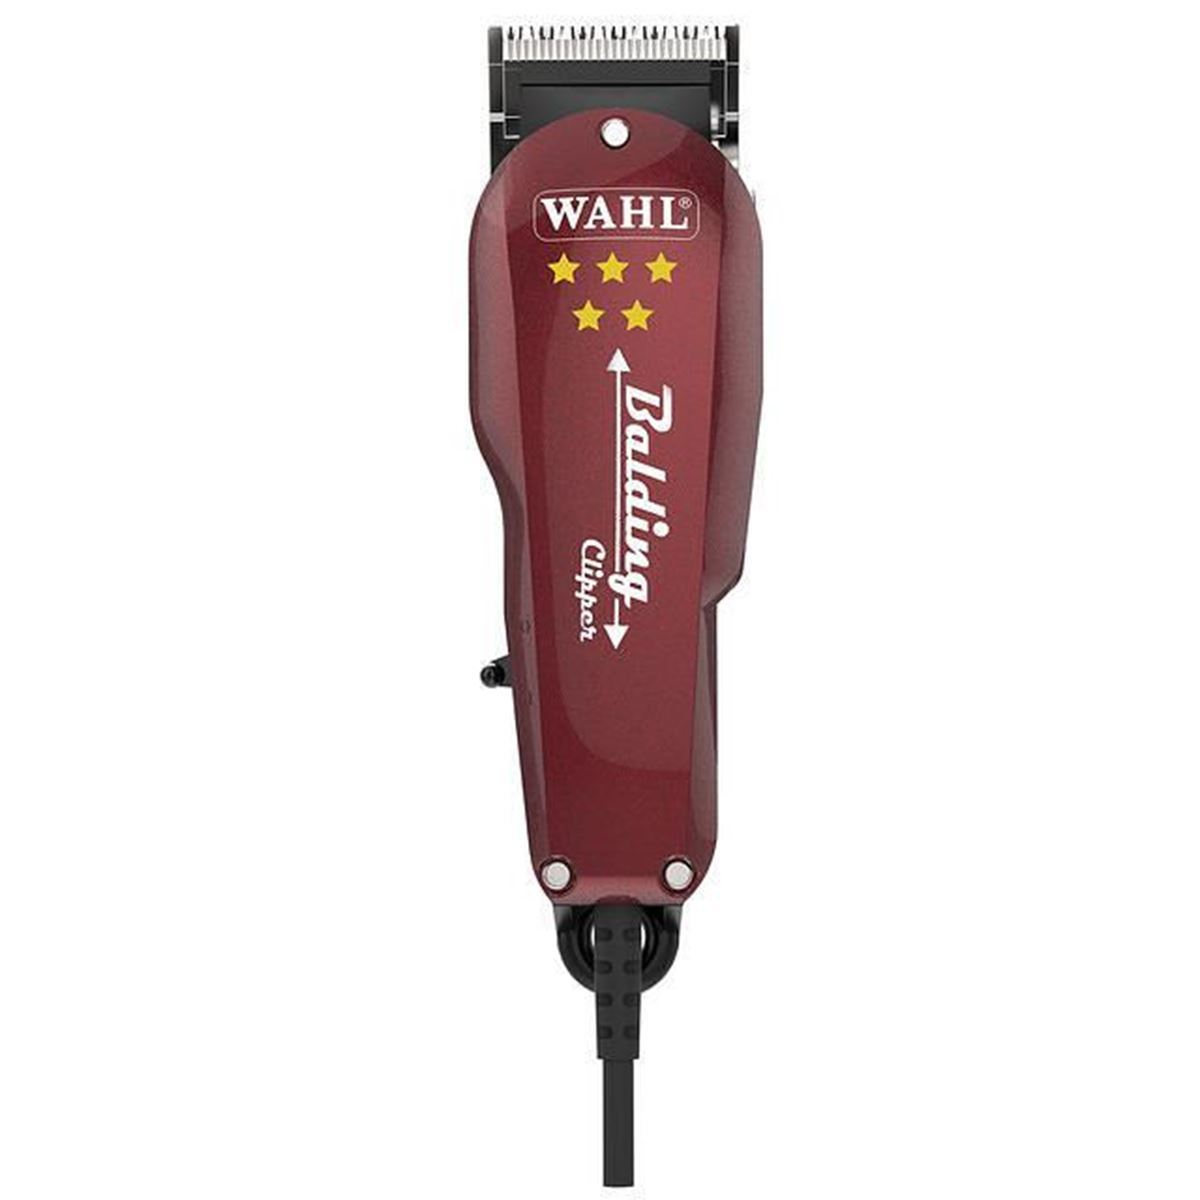 Picture of Wahl 5 Star Balding Clipper